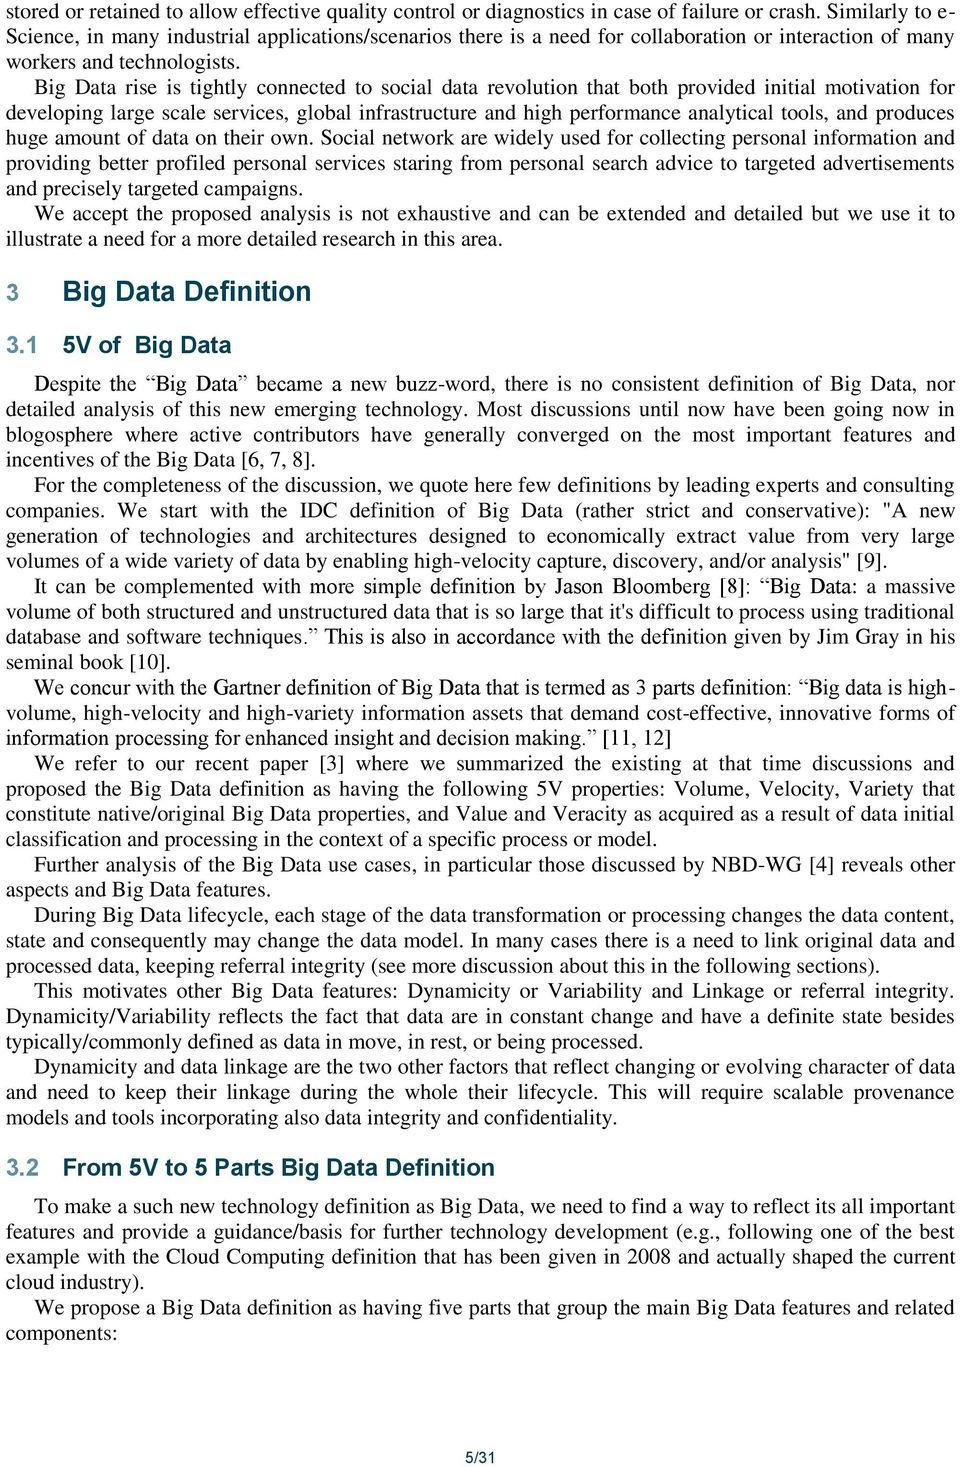 Big Data rise is tightly connected to social data revolution that both provided initial motivation for developing large scale services, global infrastructure and high performance analytical tools,